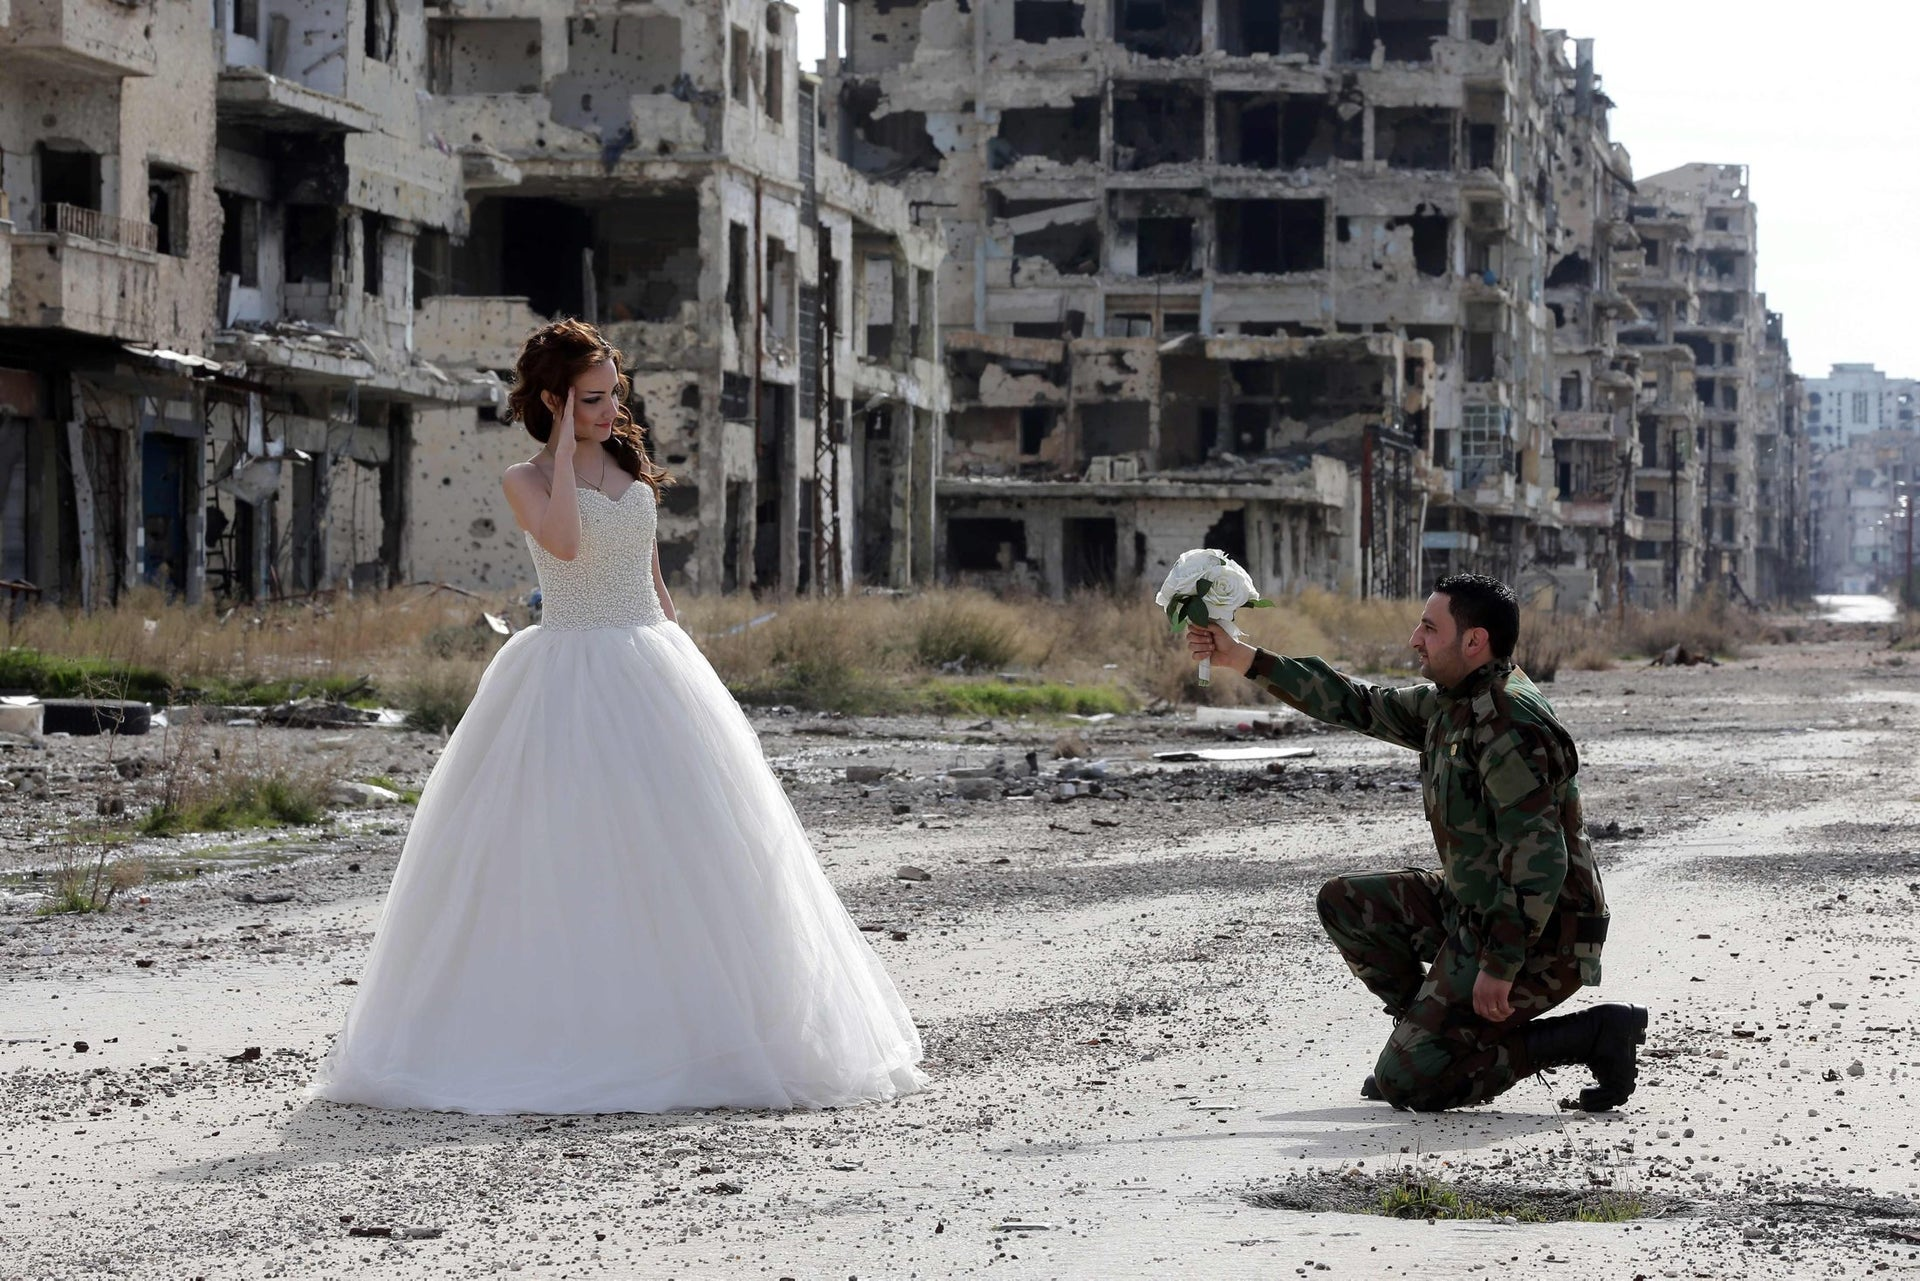 Newly-wed Syrian couple Nada Merhi,18, and Hassan Youssef,27, pose for a wedding picture amid heavily damaged buildings in the war ravaged city of Homs on February 5, 2016.